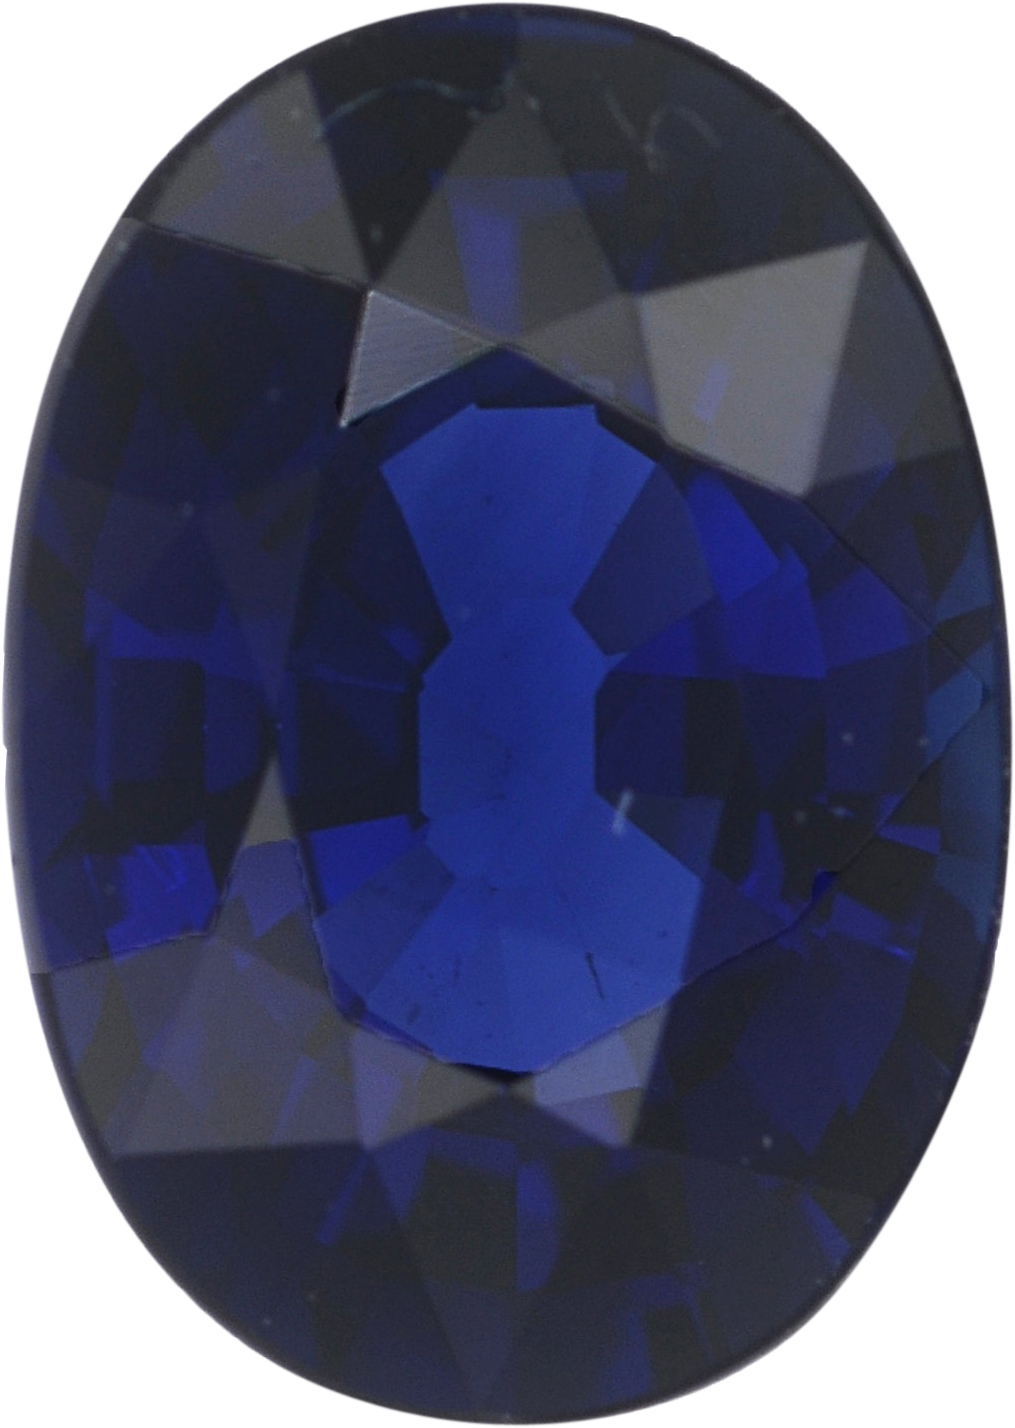 1.02 carats Blue Loose Sapphire Gemstone in Oval Cut, 6.91 x 4.9 mm